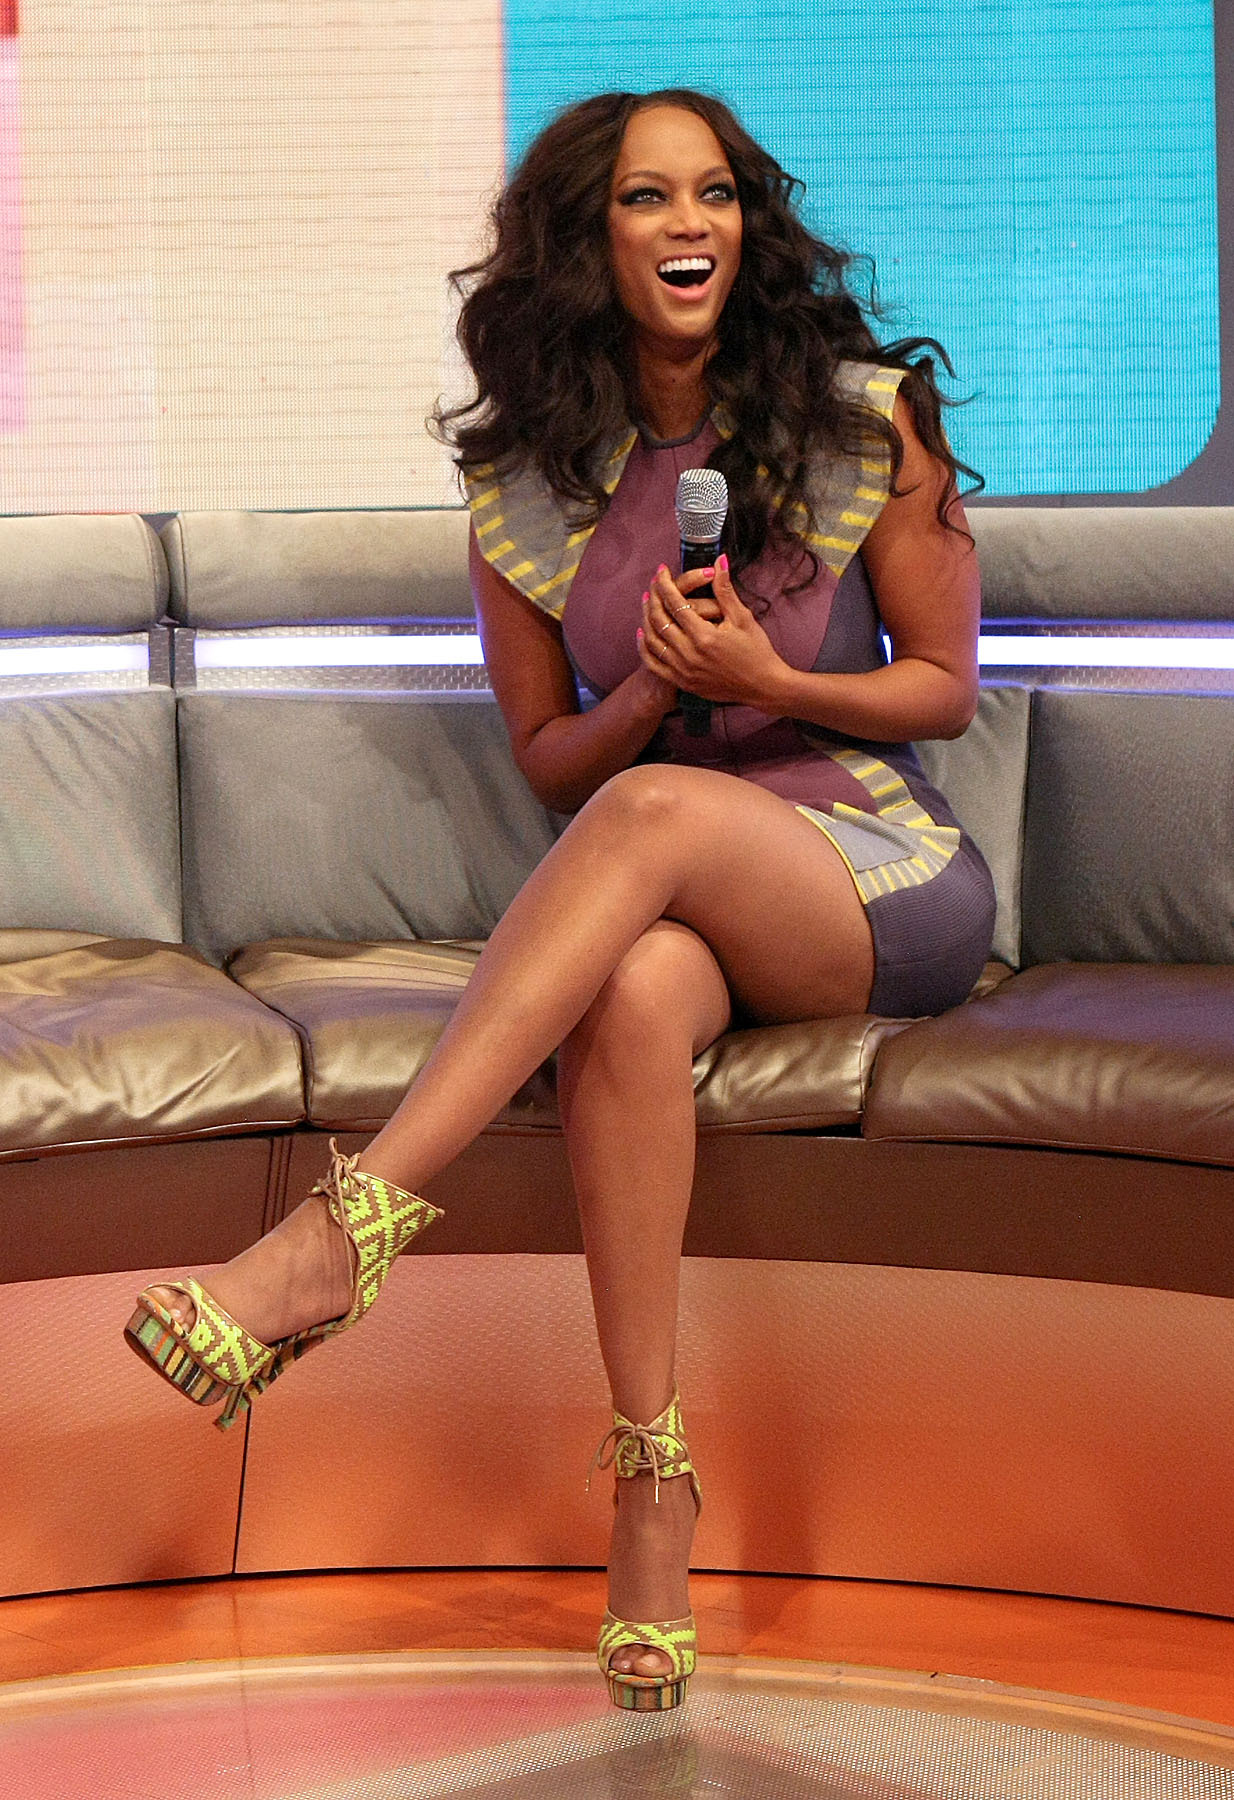 Excited too tyra banks sexy legs